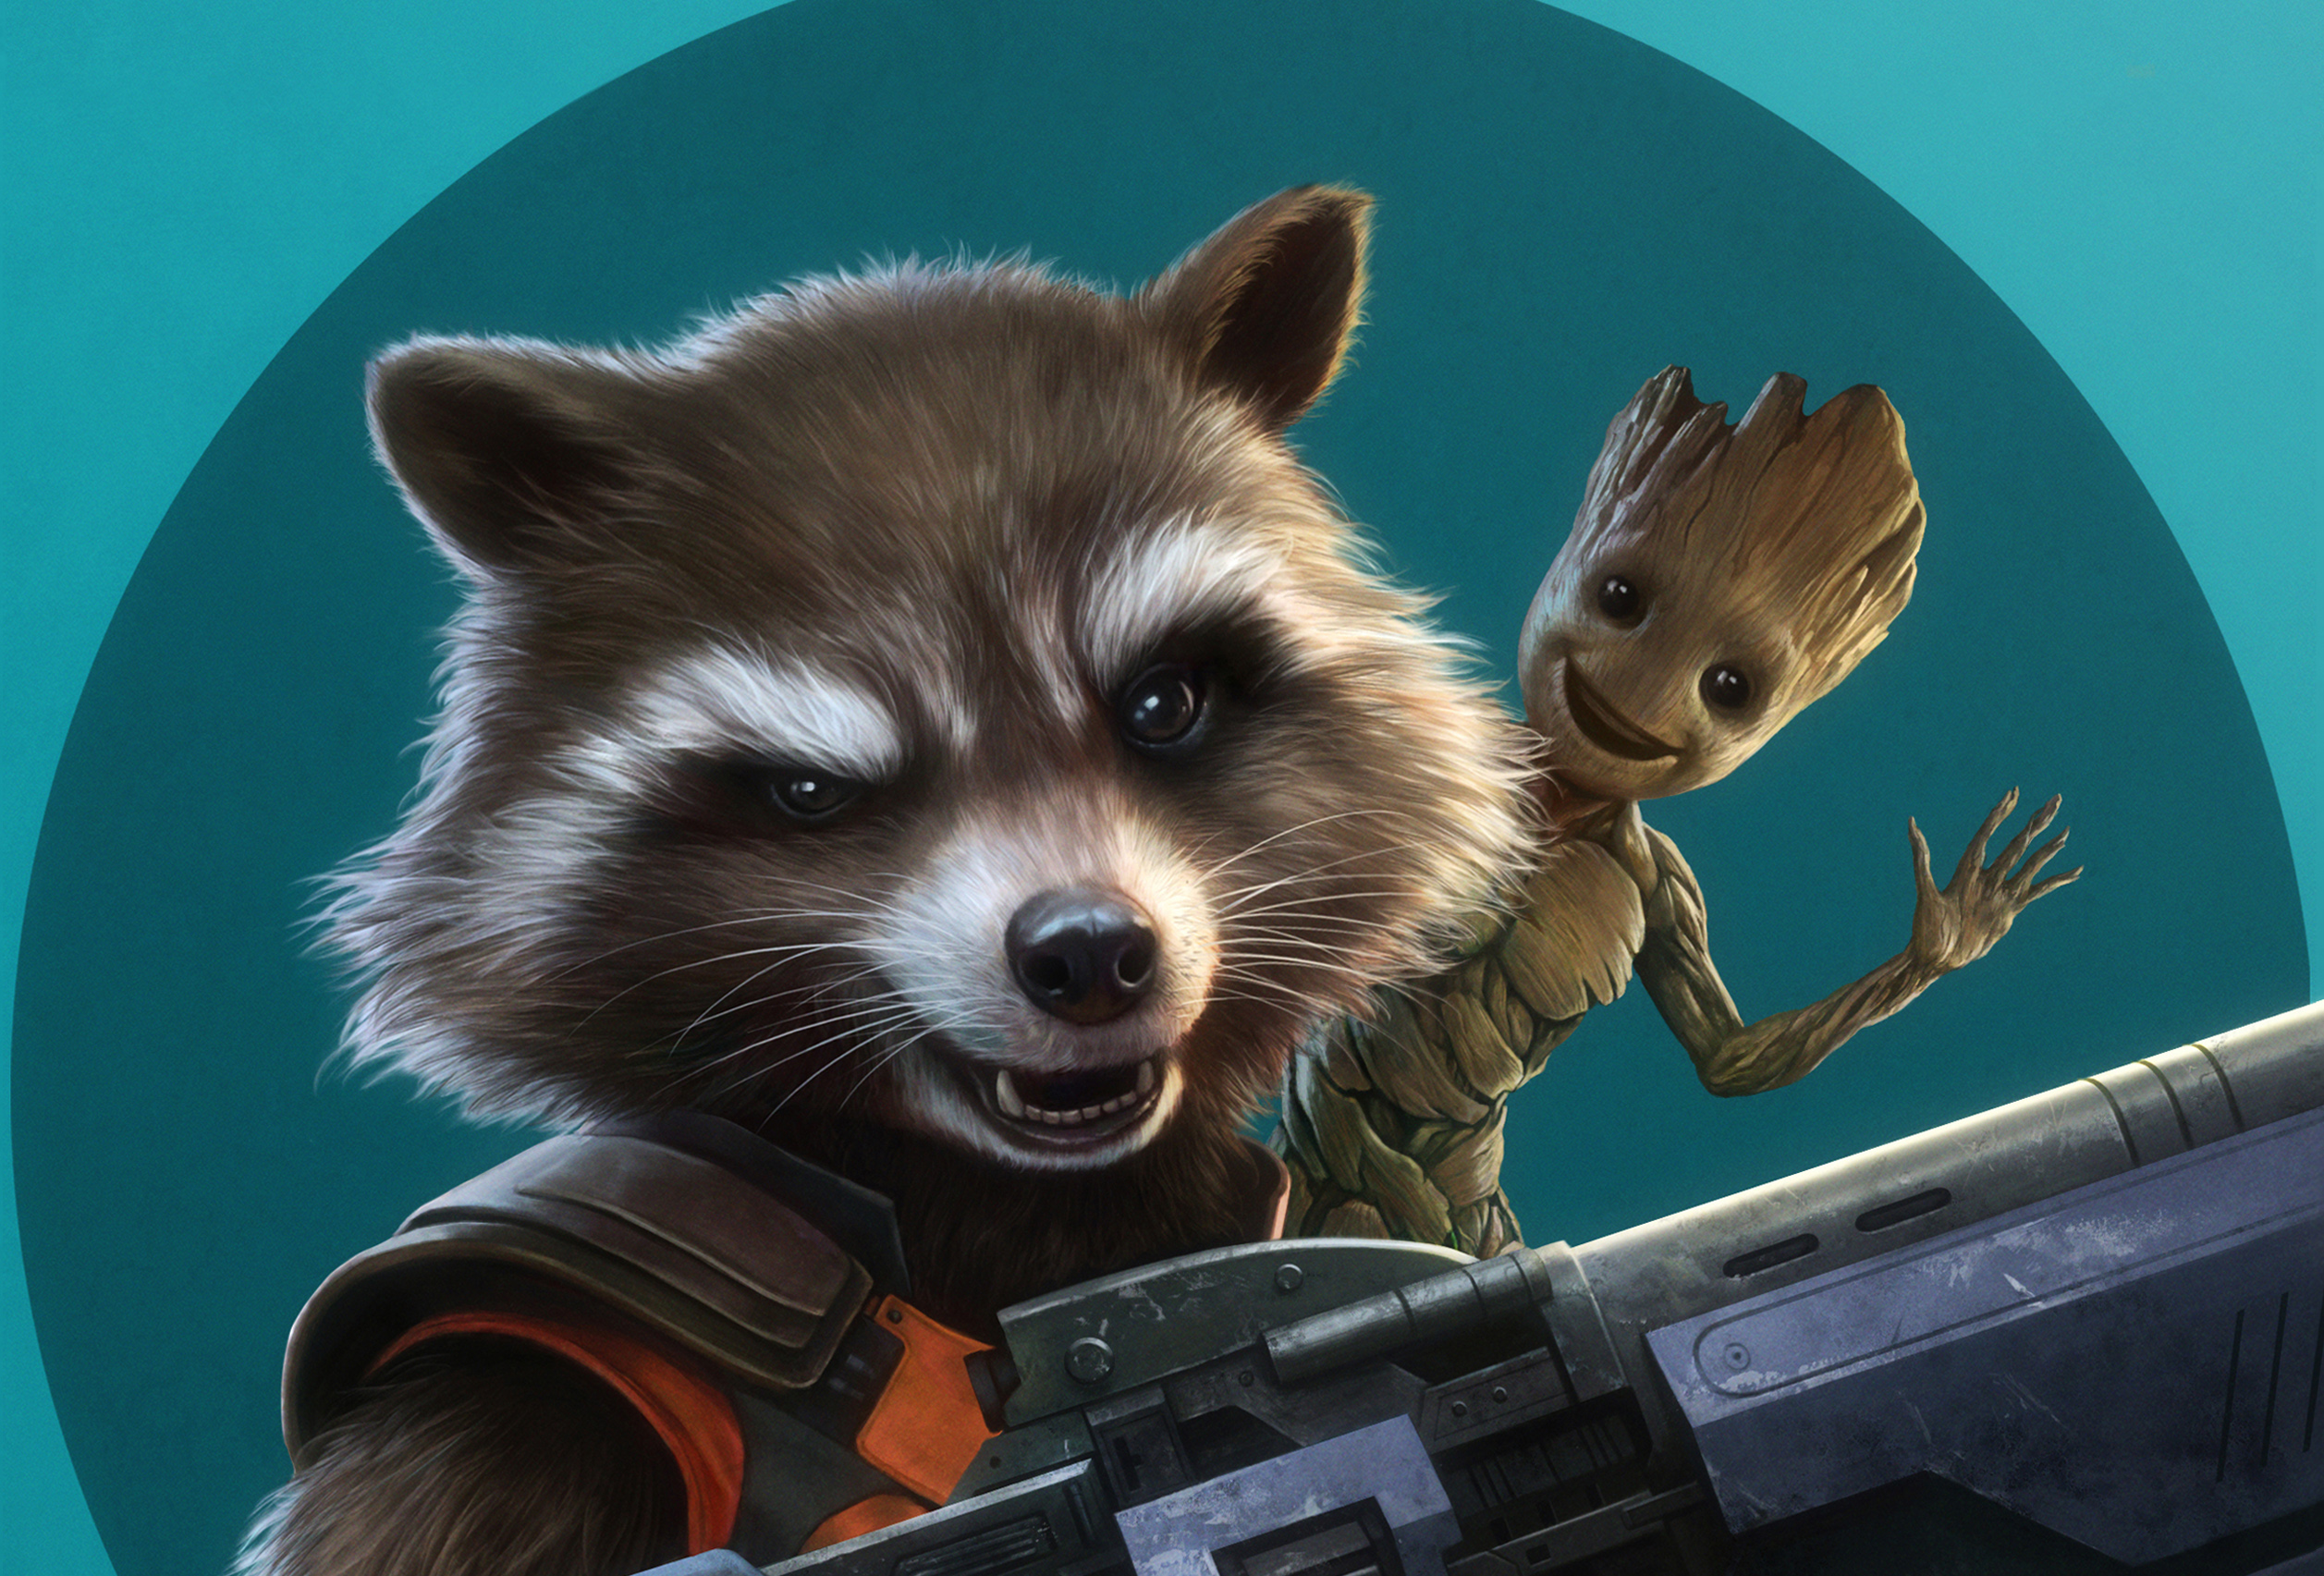 Work_Rocket Raccoon & Babe Groof By YinYuming